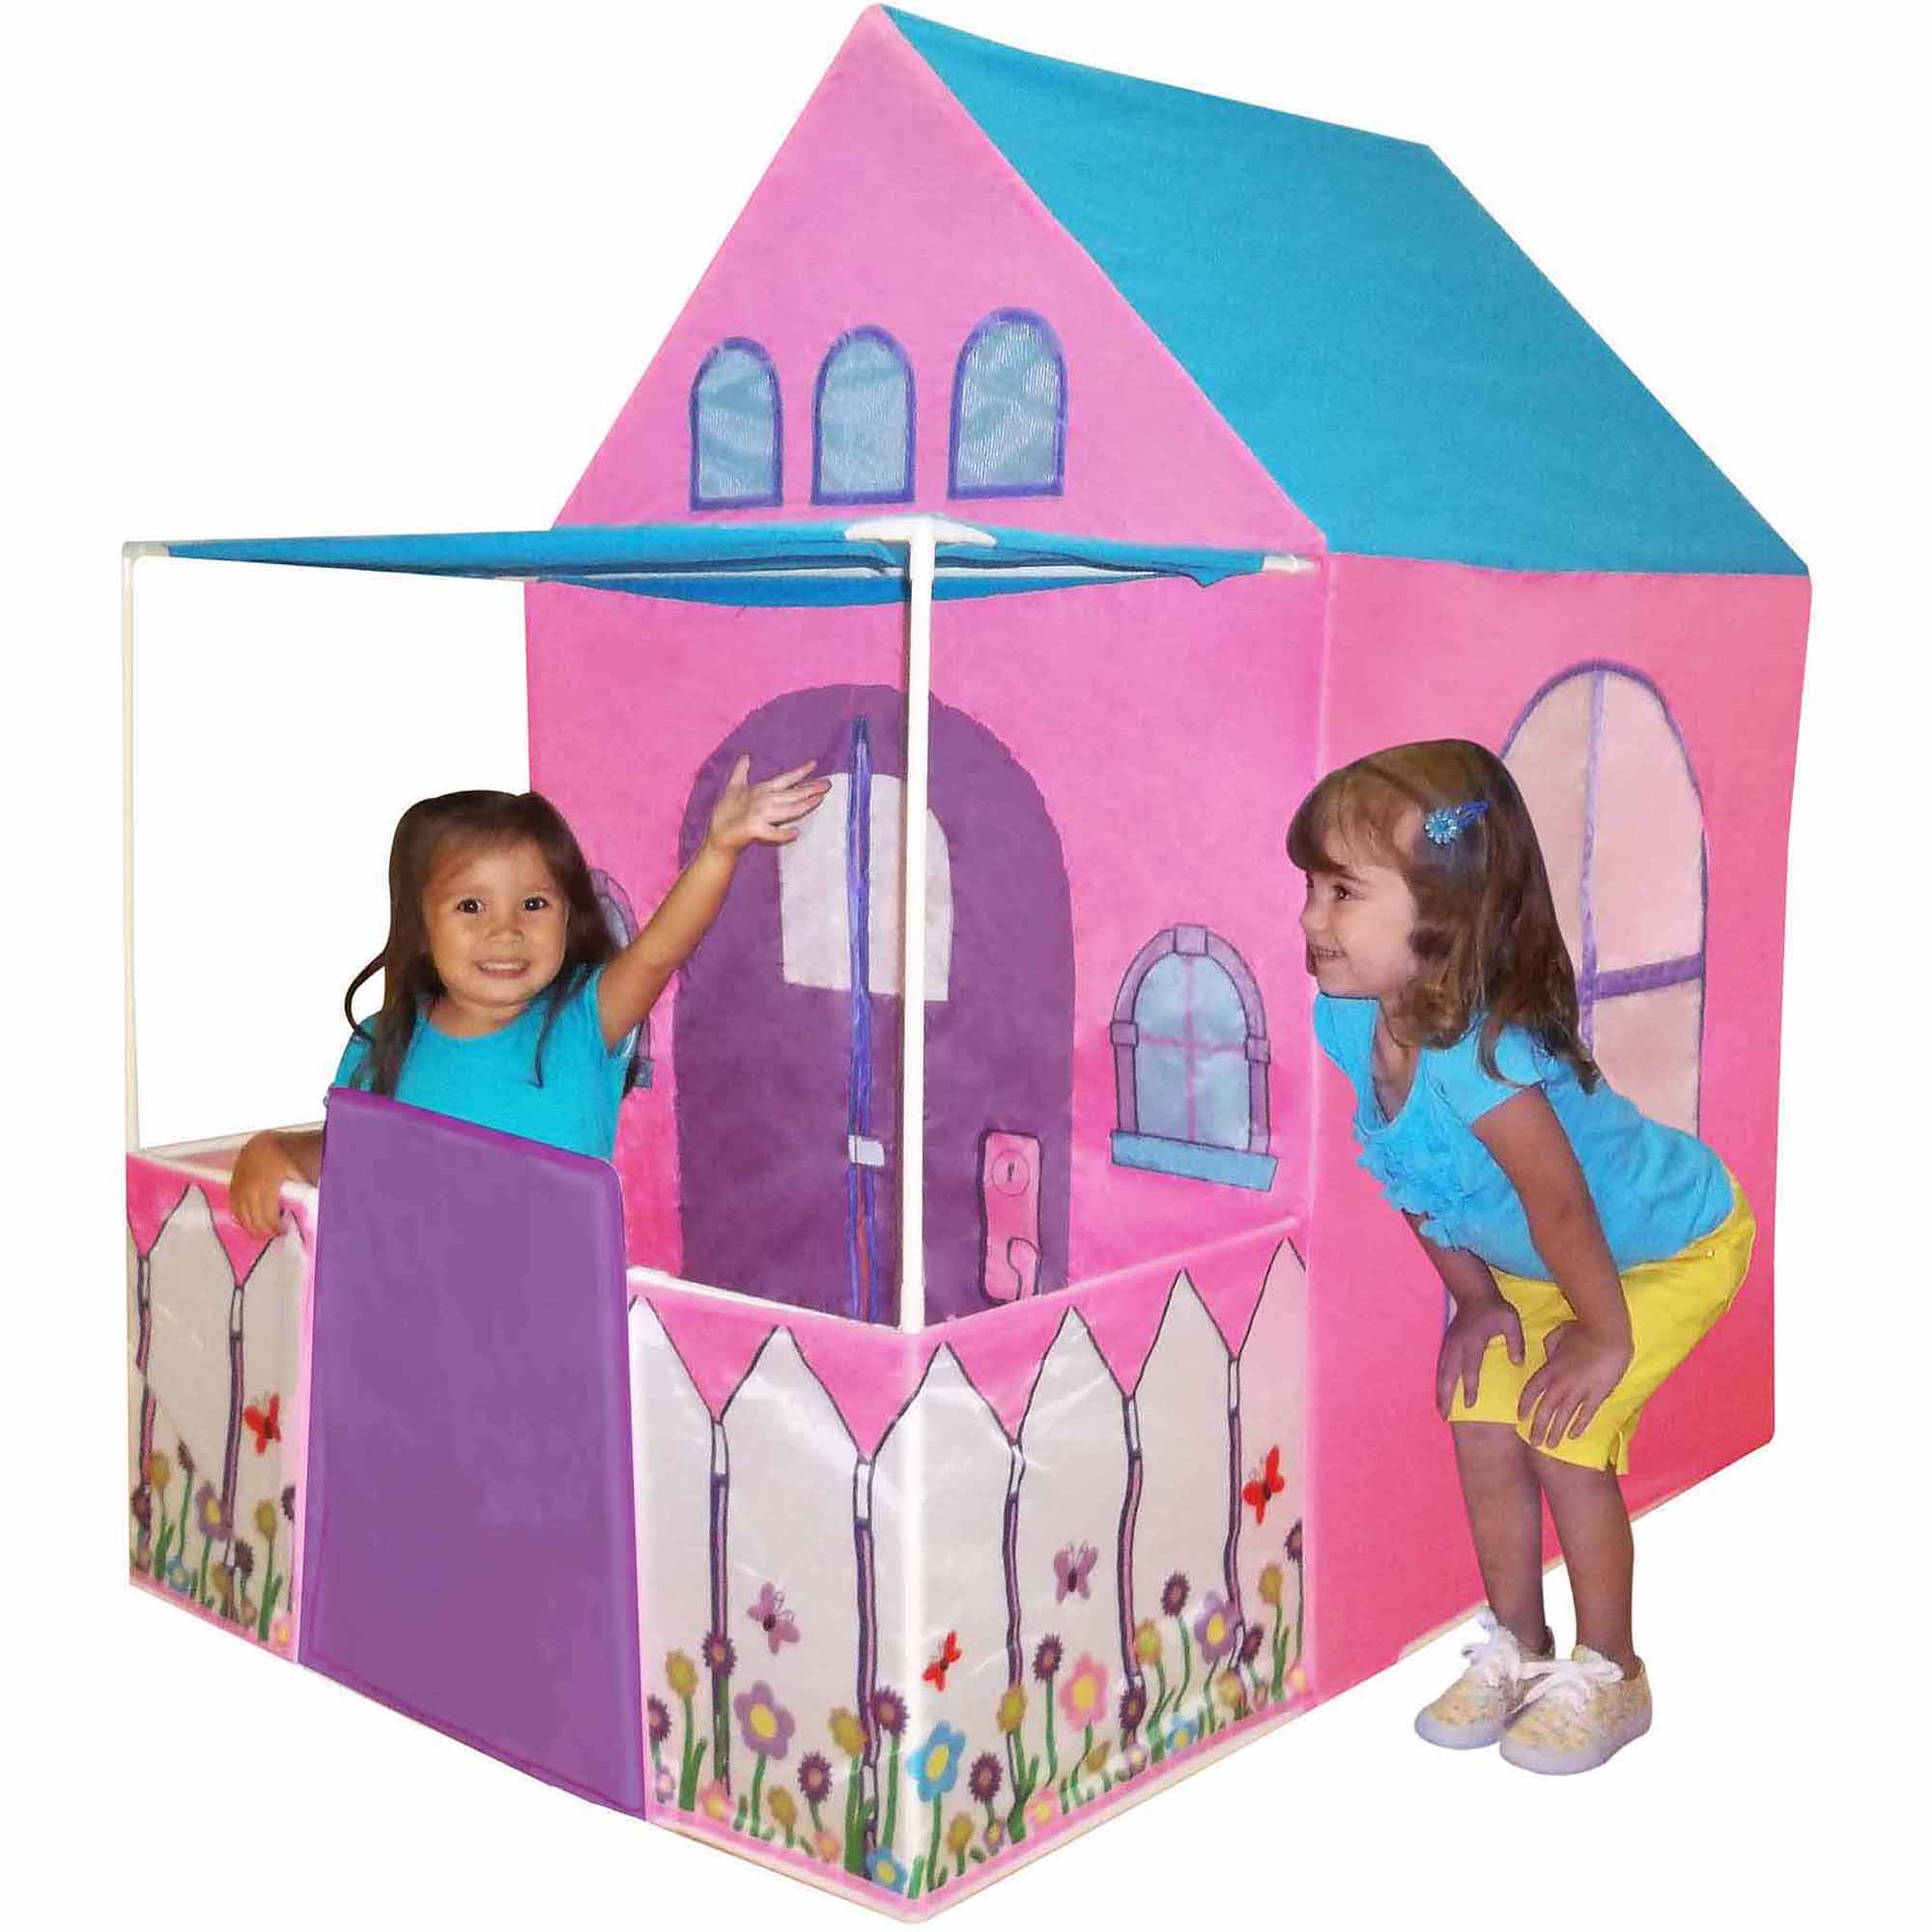 sc 1 st  Walmart : toddler playhouse tent - memphite.com